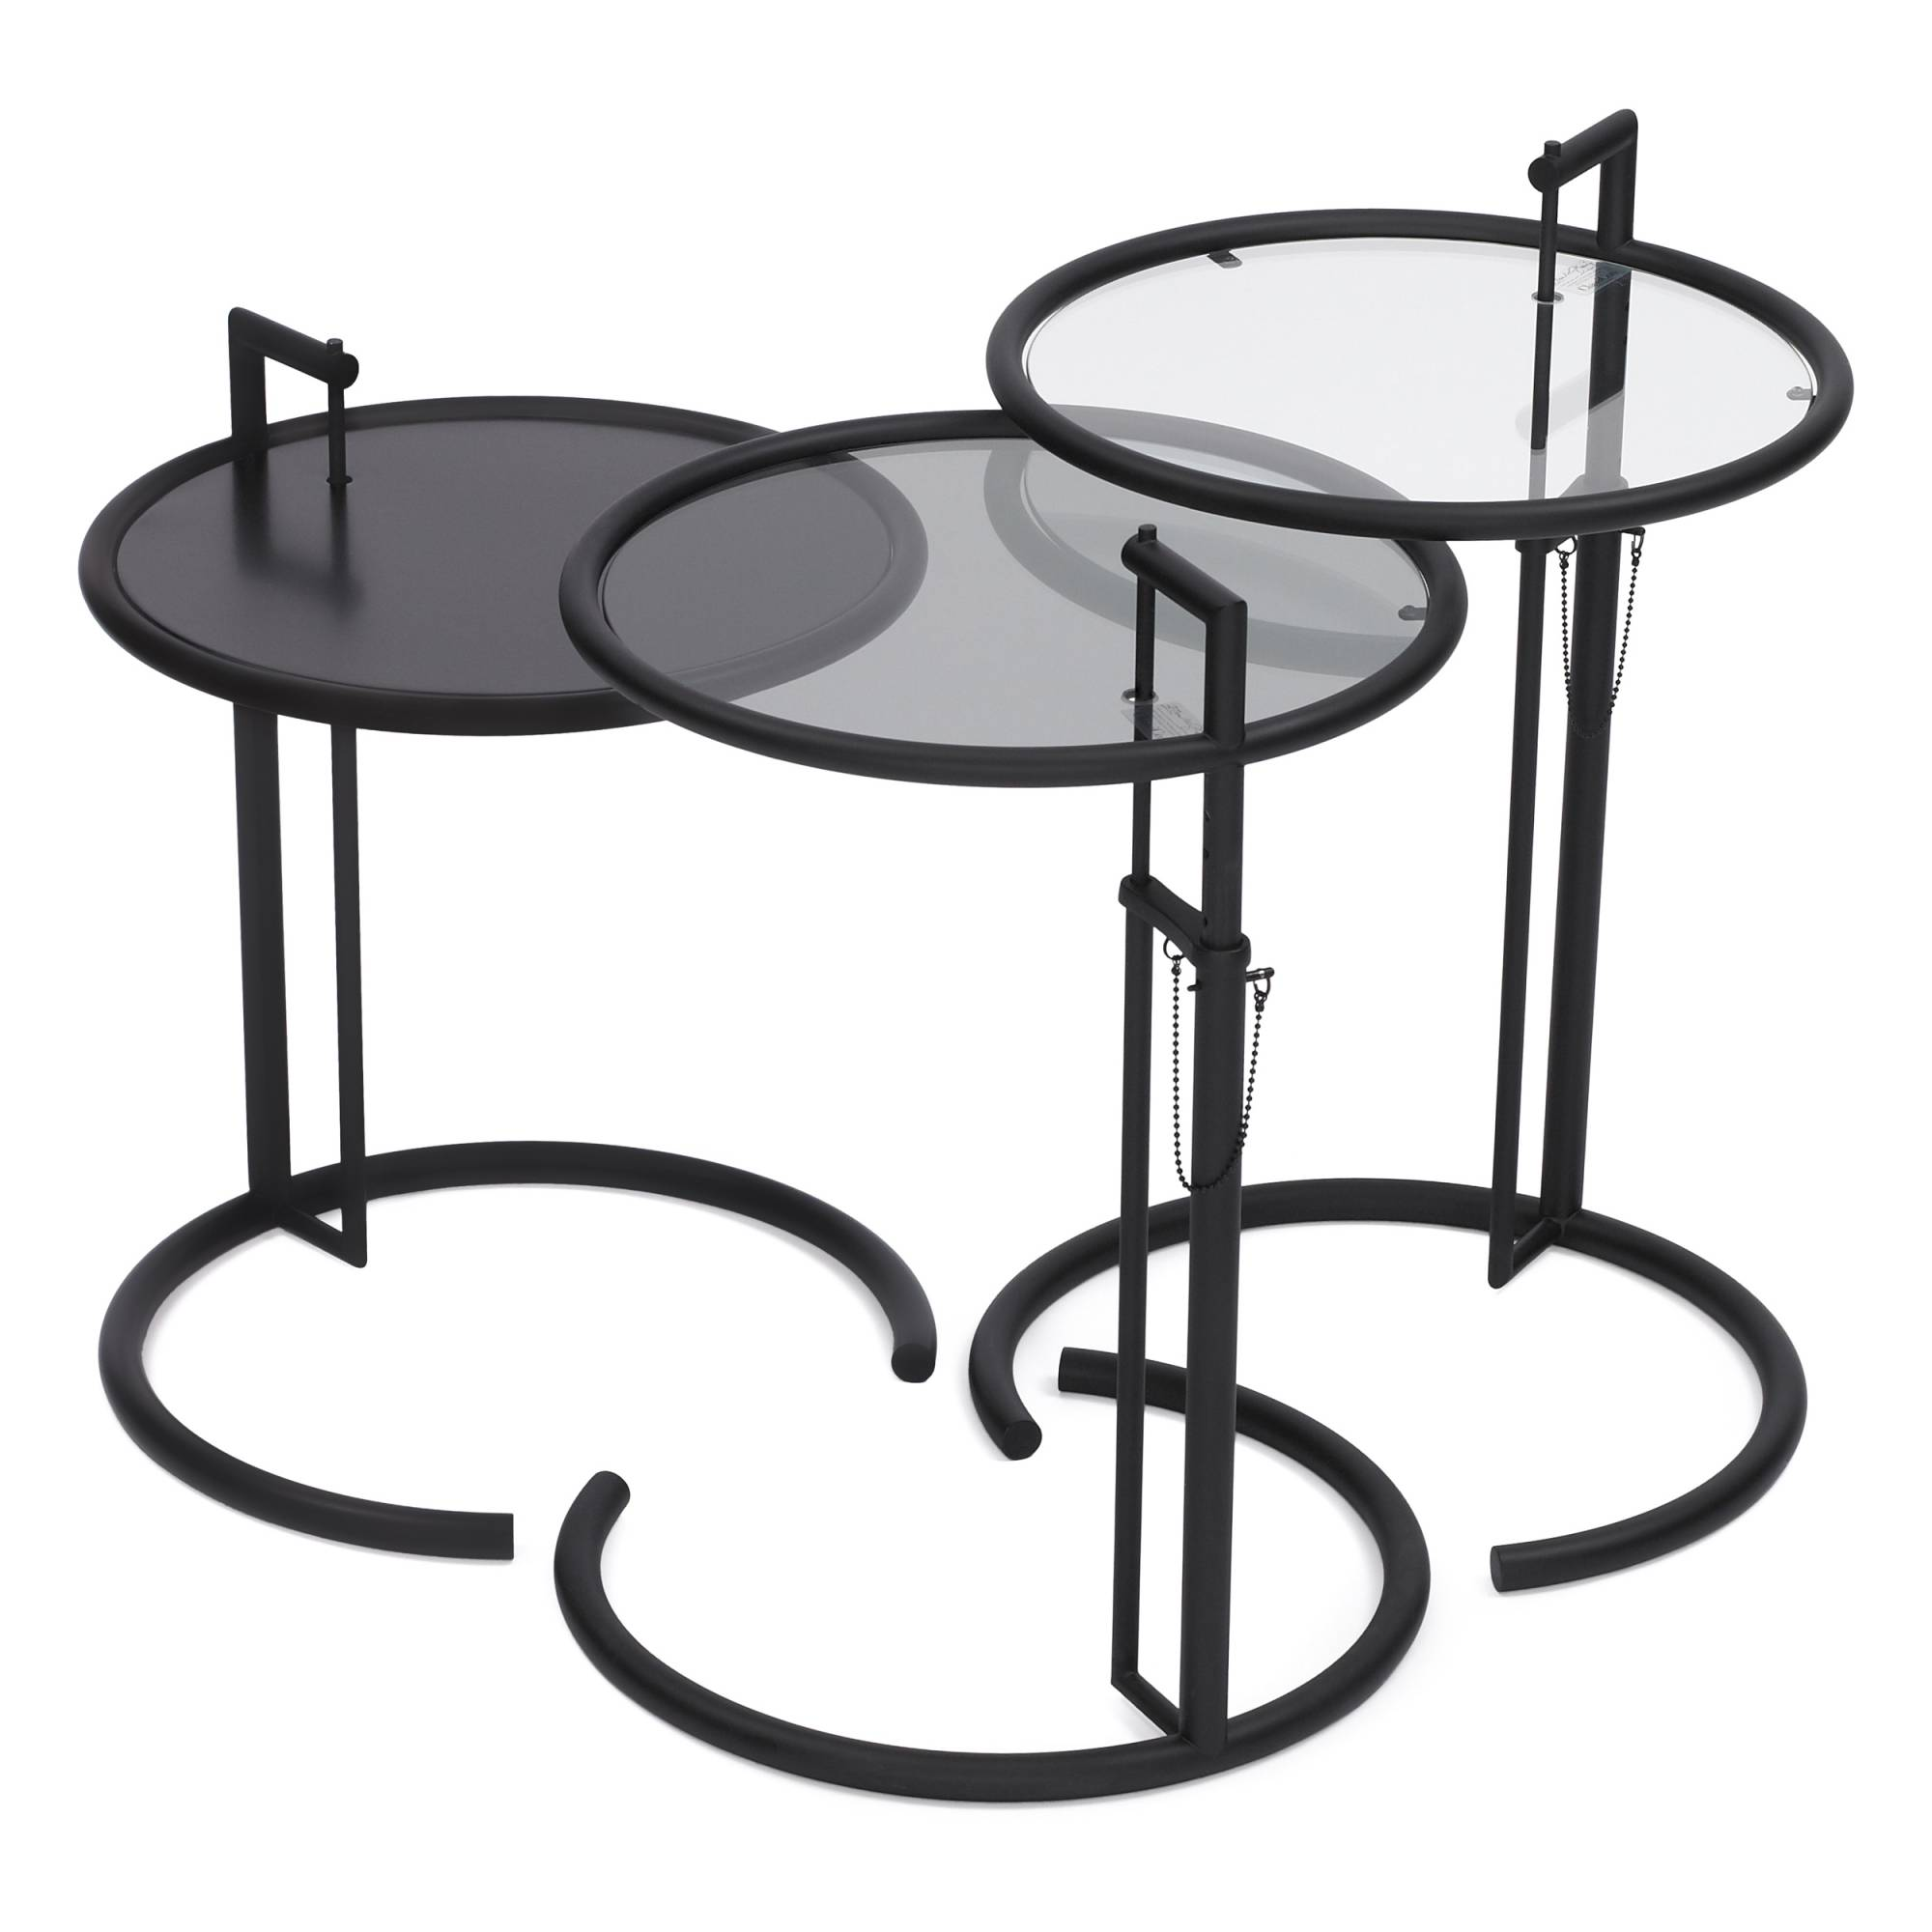 k p adjustable table e 1027 fr n classicon nordiska galleriet. Black Bedroom Furniture Sets. Home Design Ideas